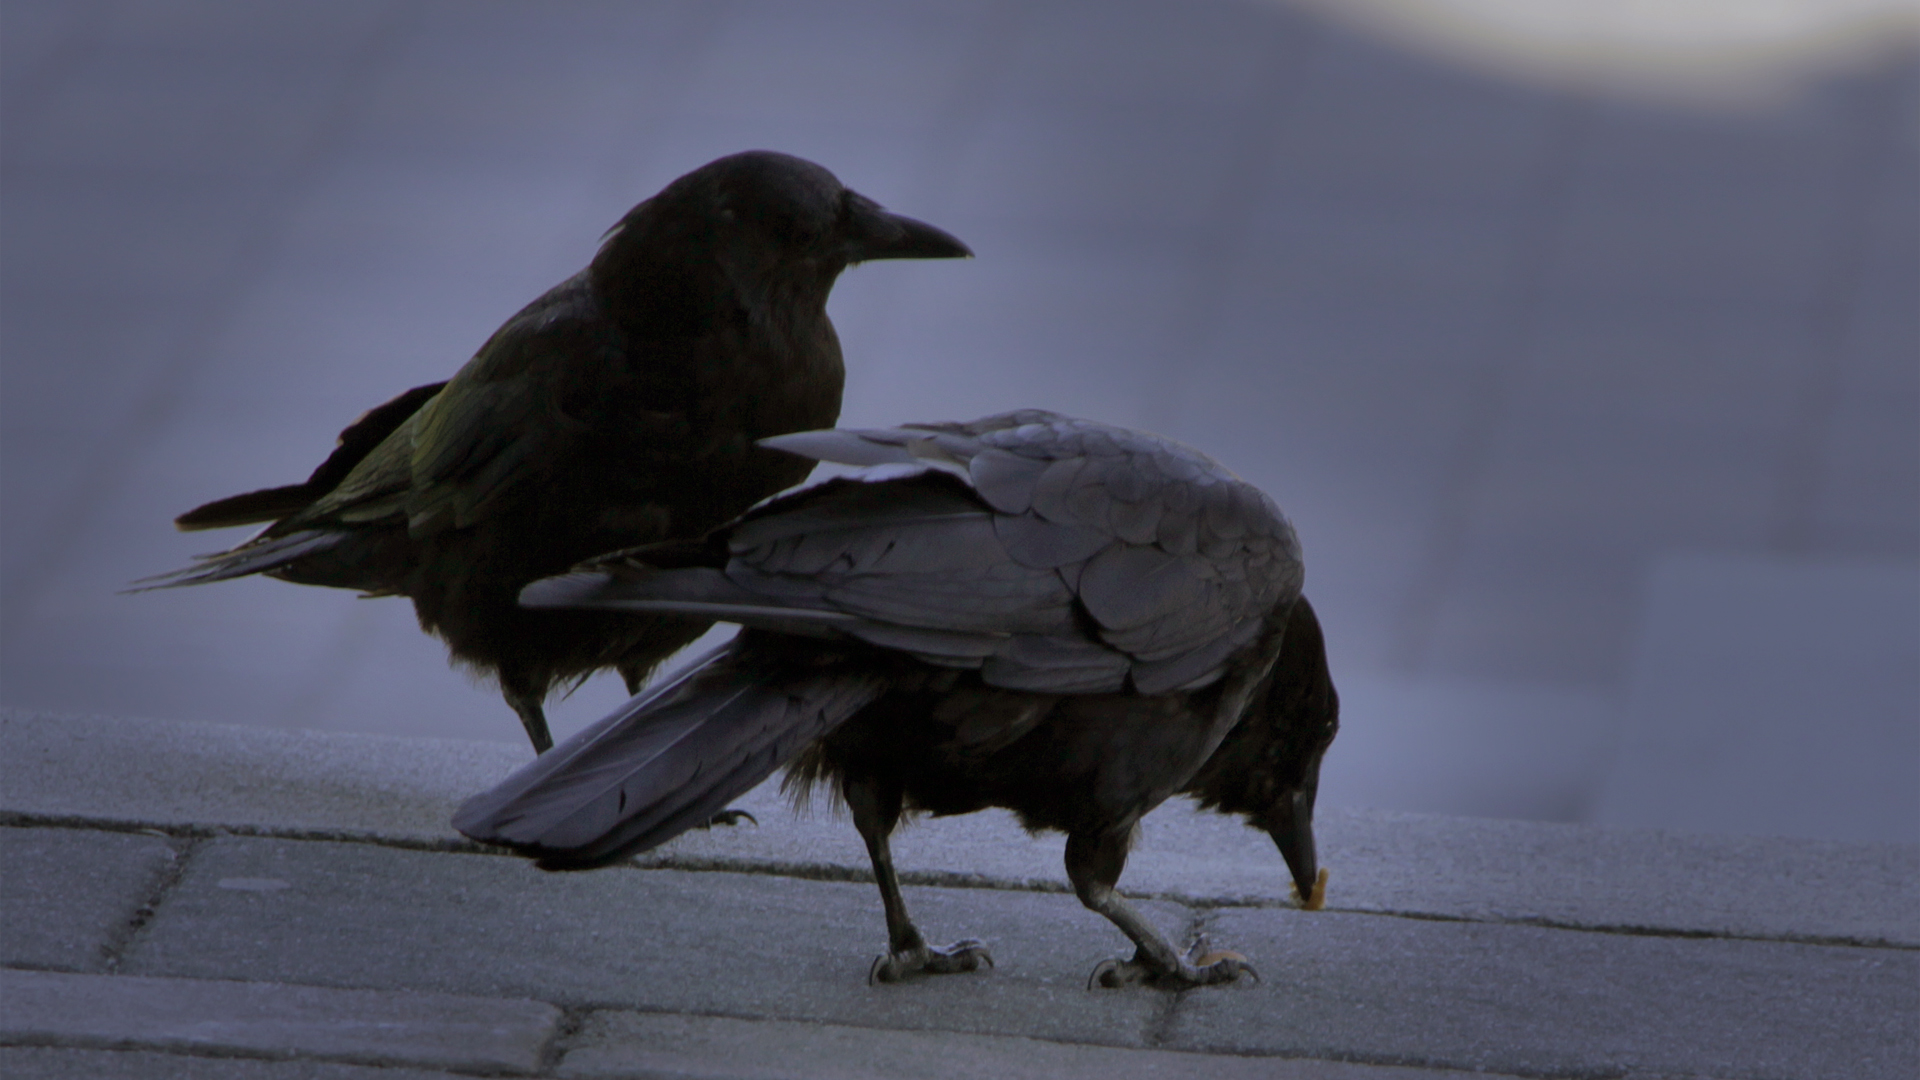 Crows Eating by soupertrooper Crows Eating by soupertrooper